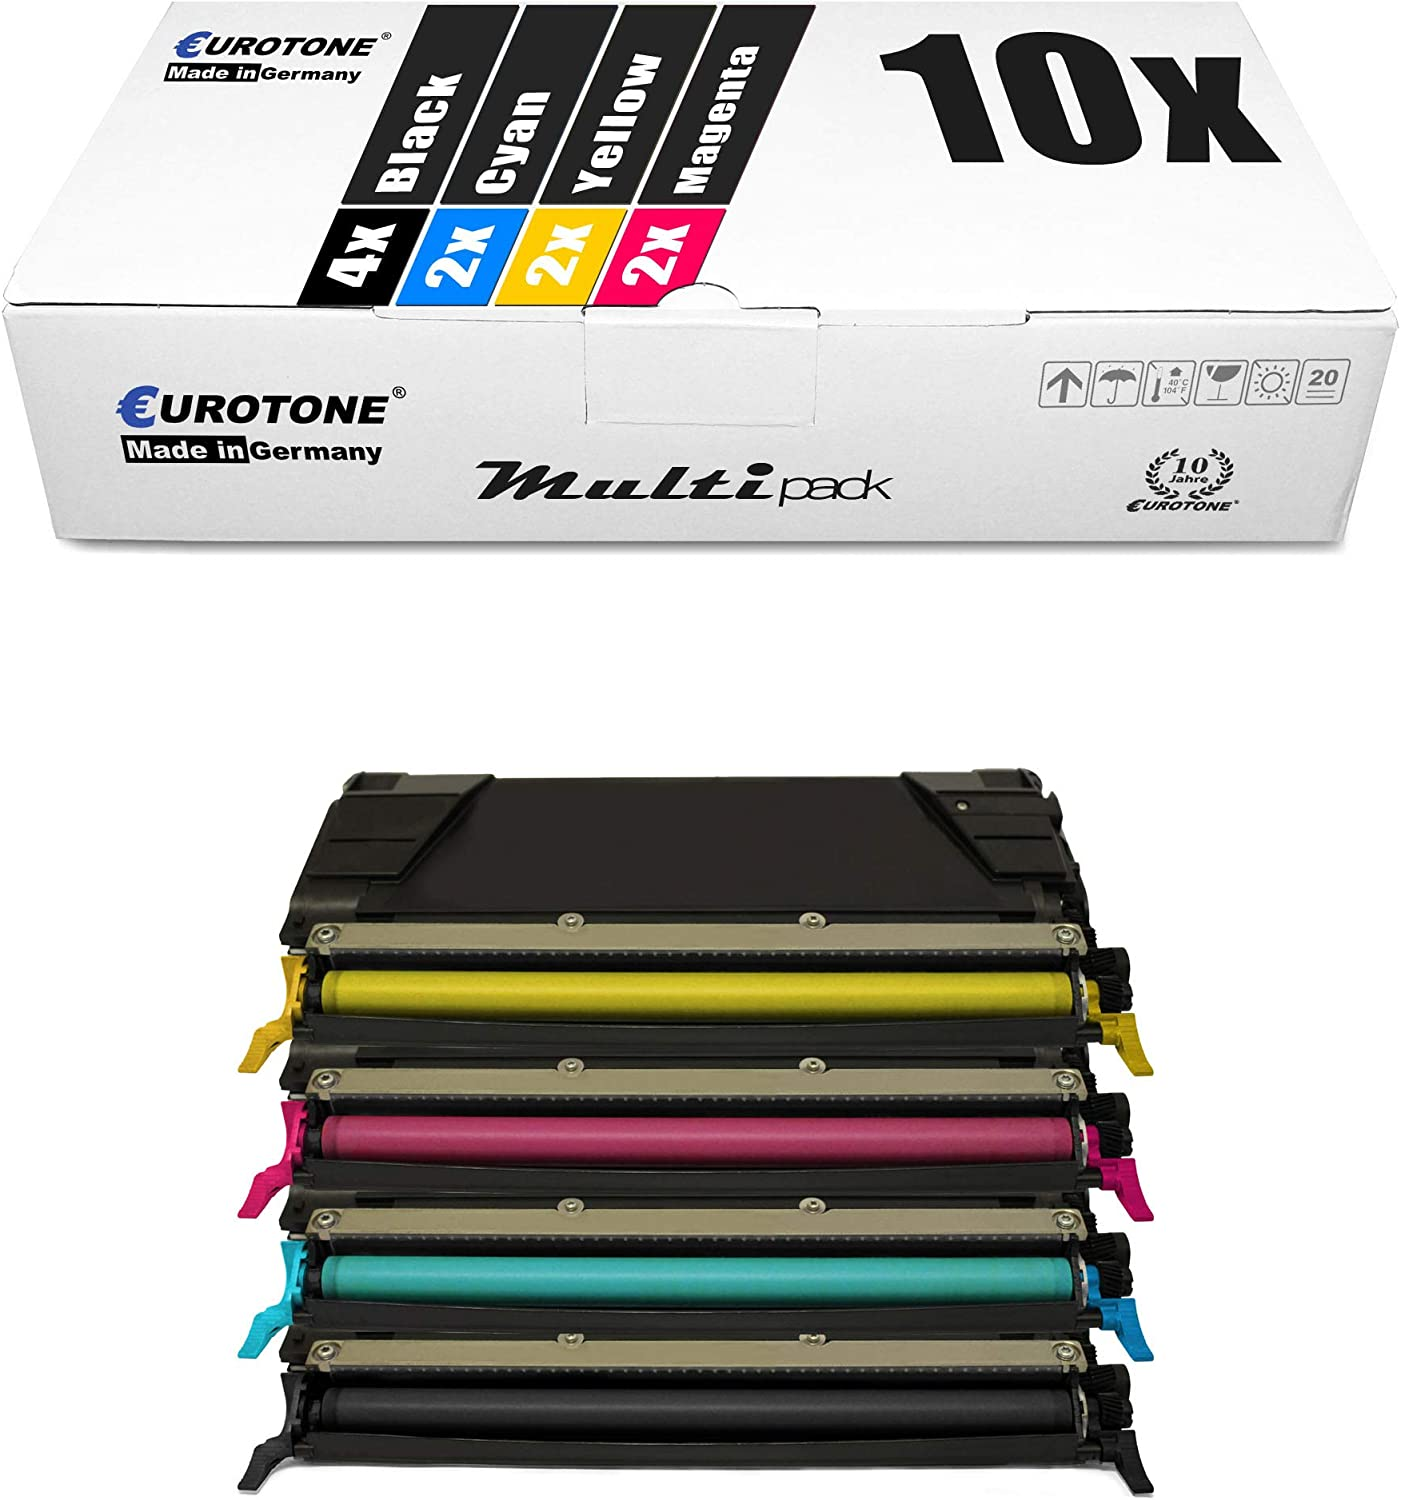 8X Eurotone Toner for Lexmark Optra C 520 522 524 530 532 534 DN N DTN Replaces